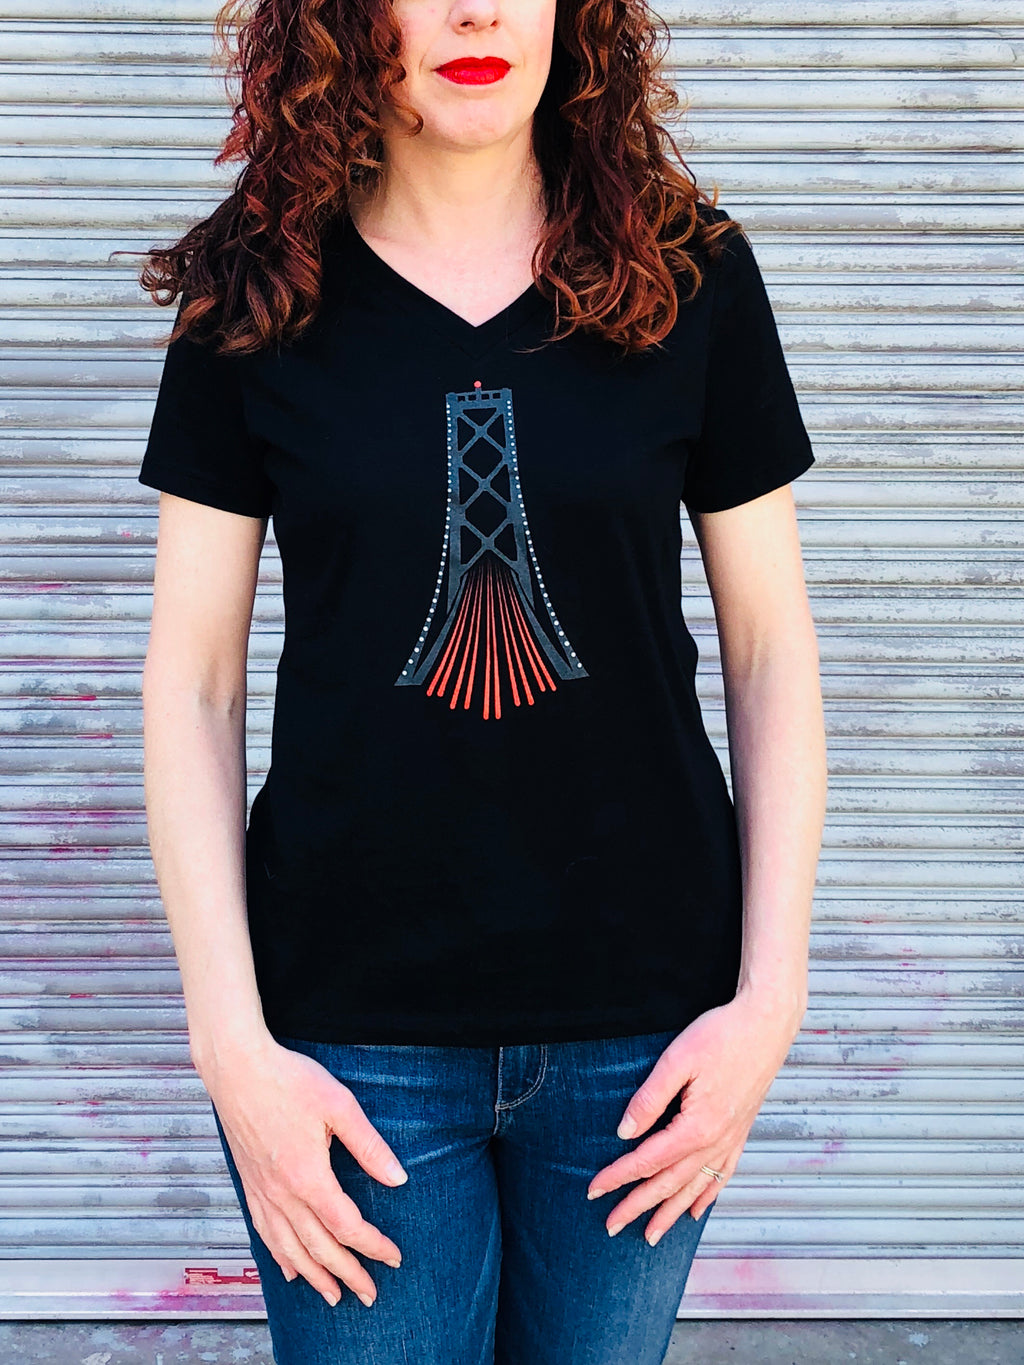 Bay Bridge at Night Ladies V-Neck T-shirt San Francisco T-shirt